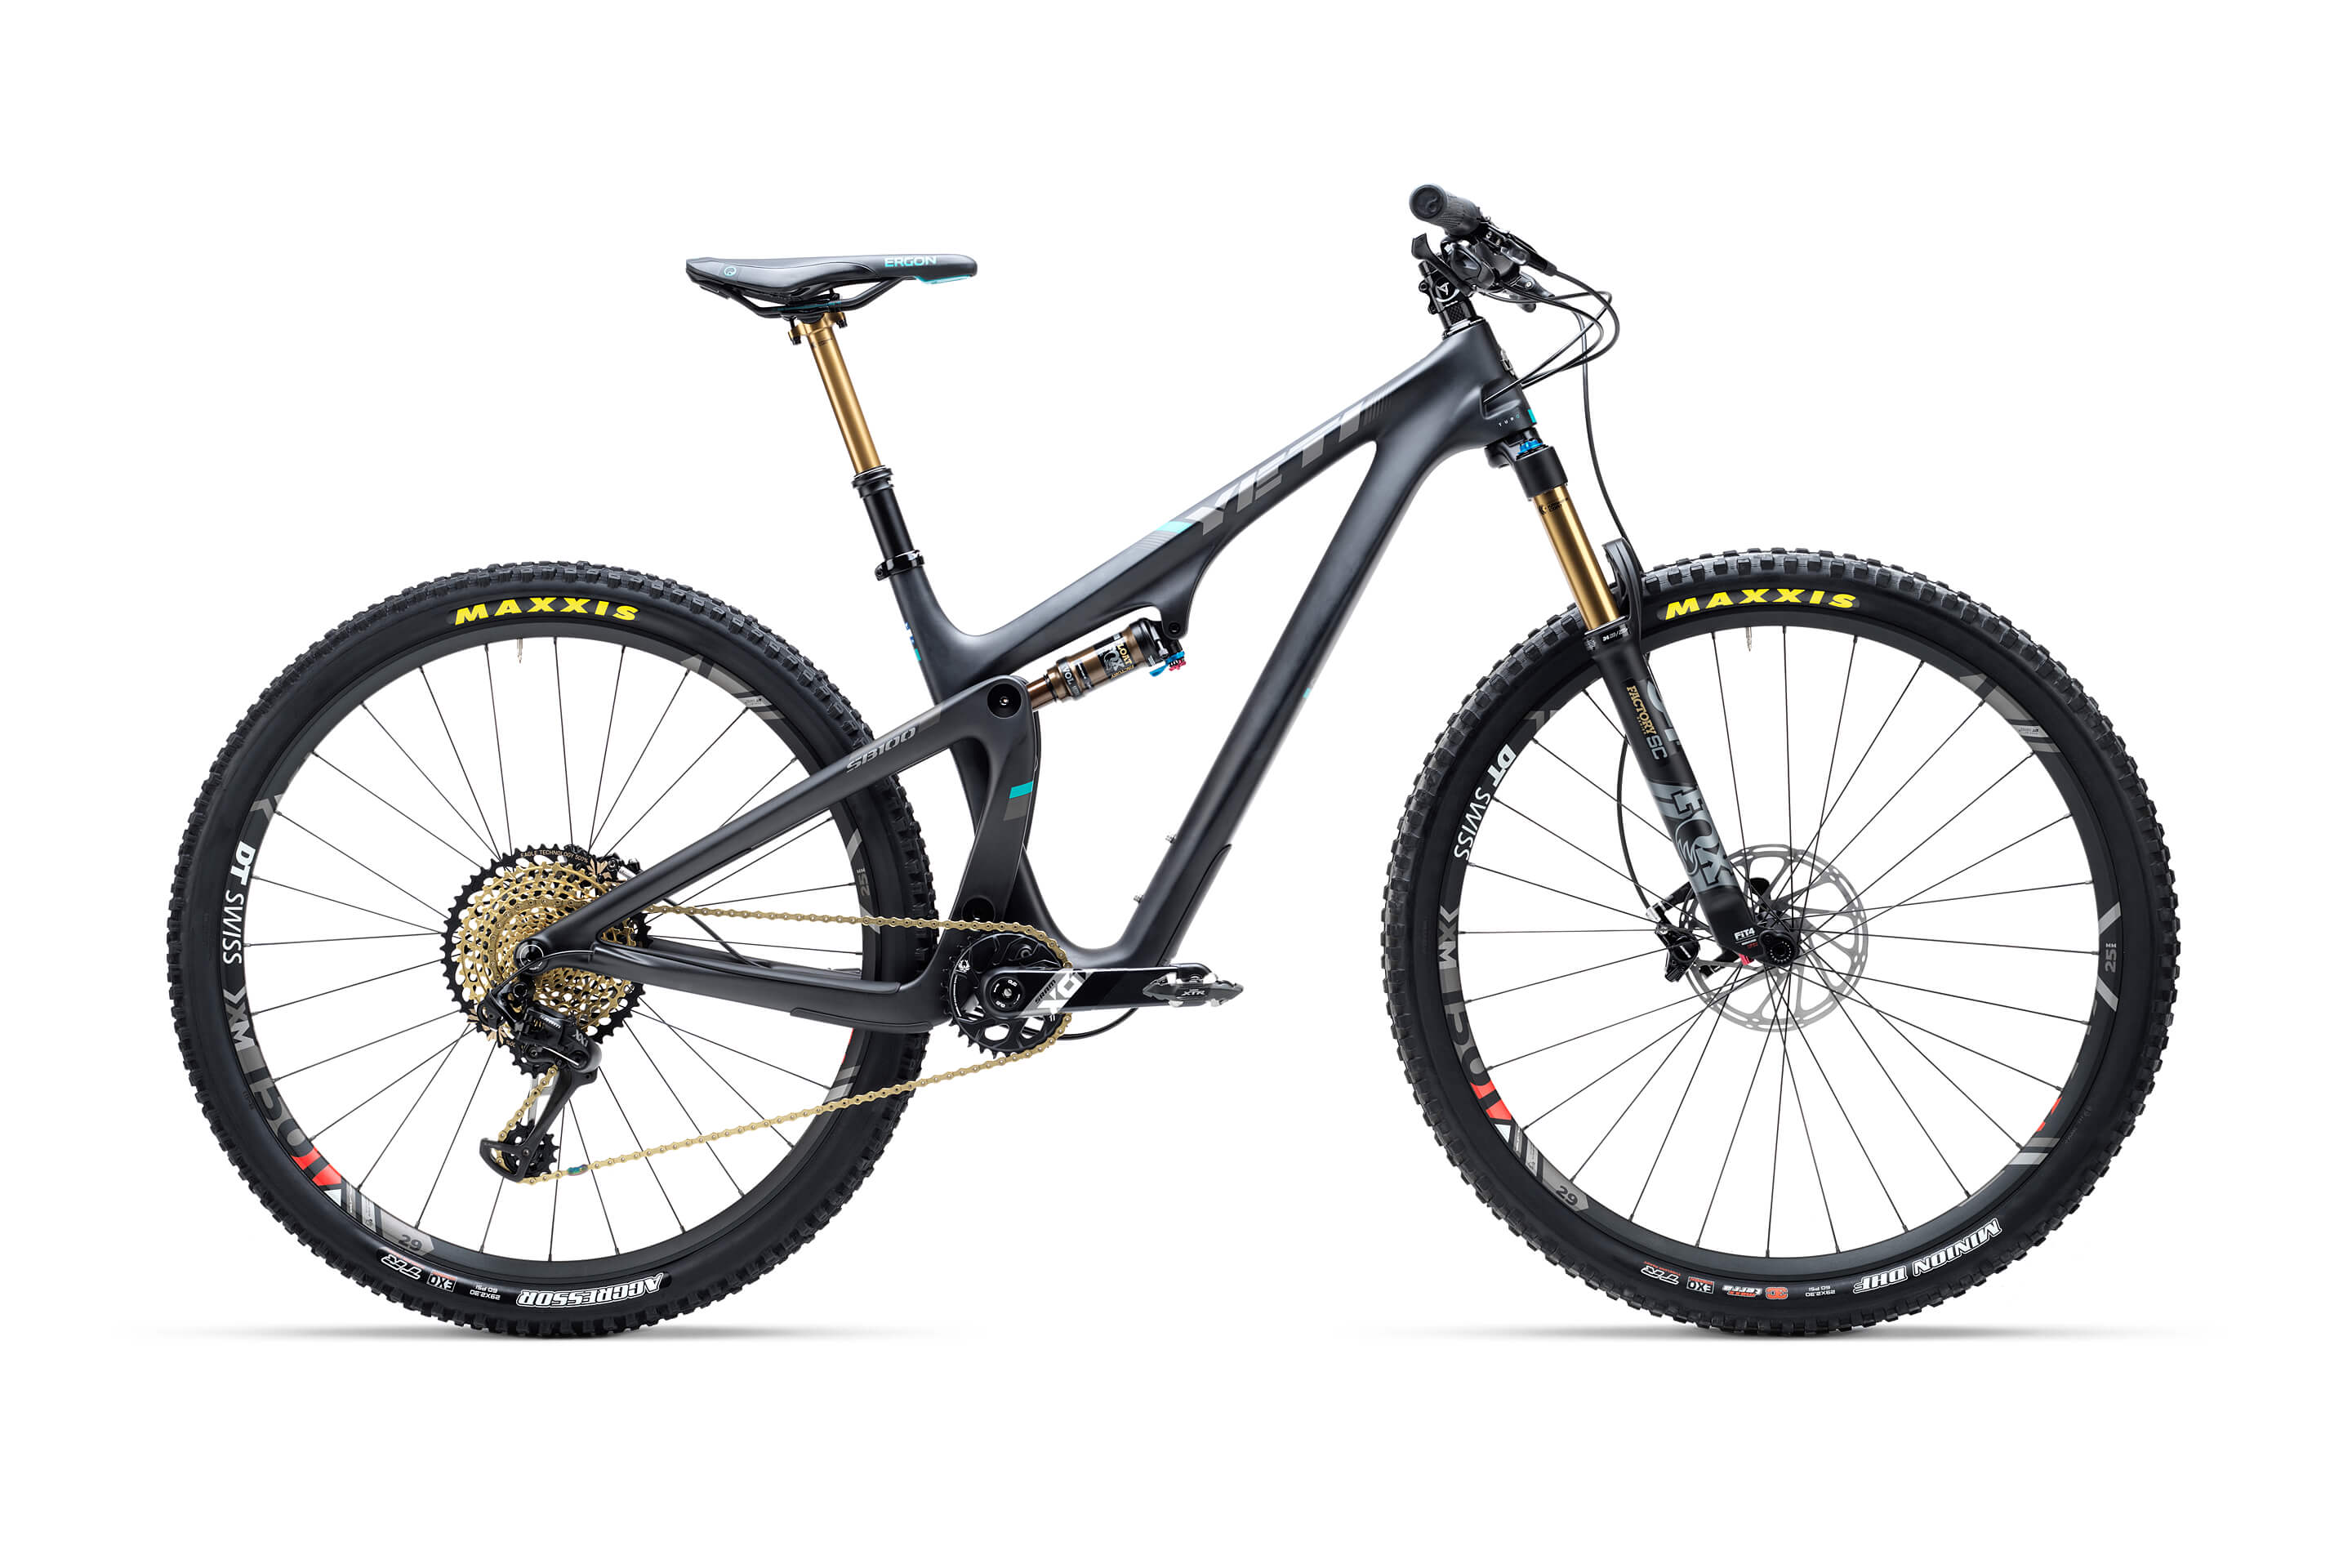 Yeti Sb100 Switches Things Up For Aggressive Xc Amp Trail